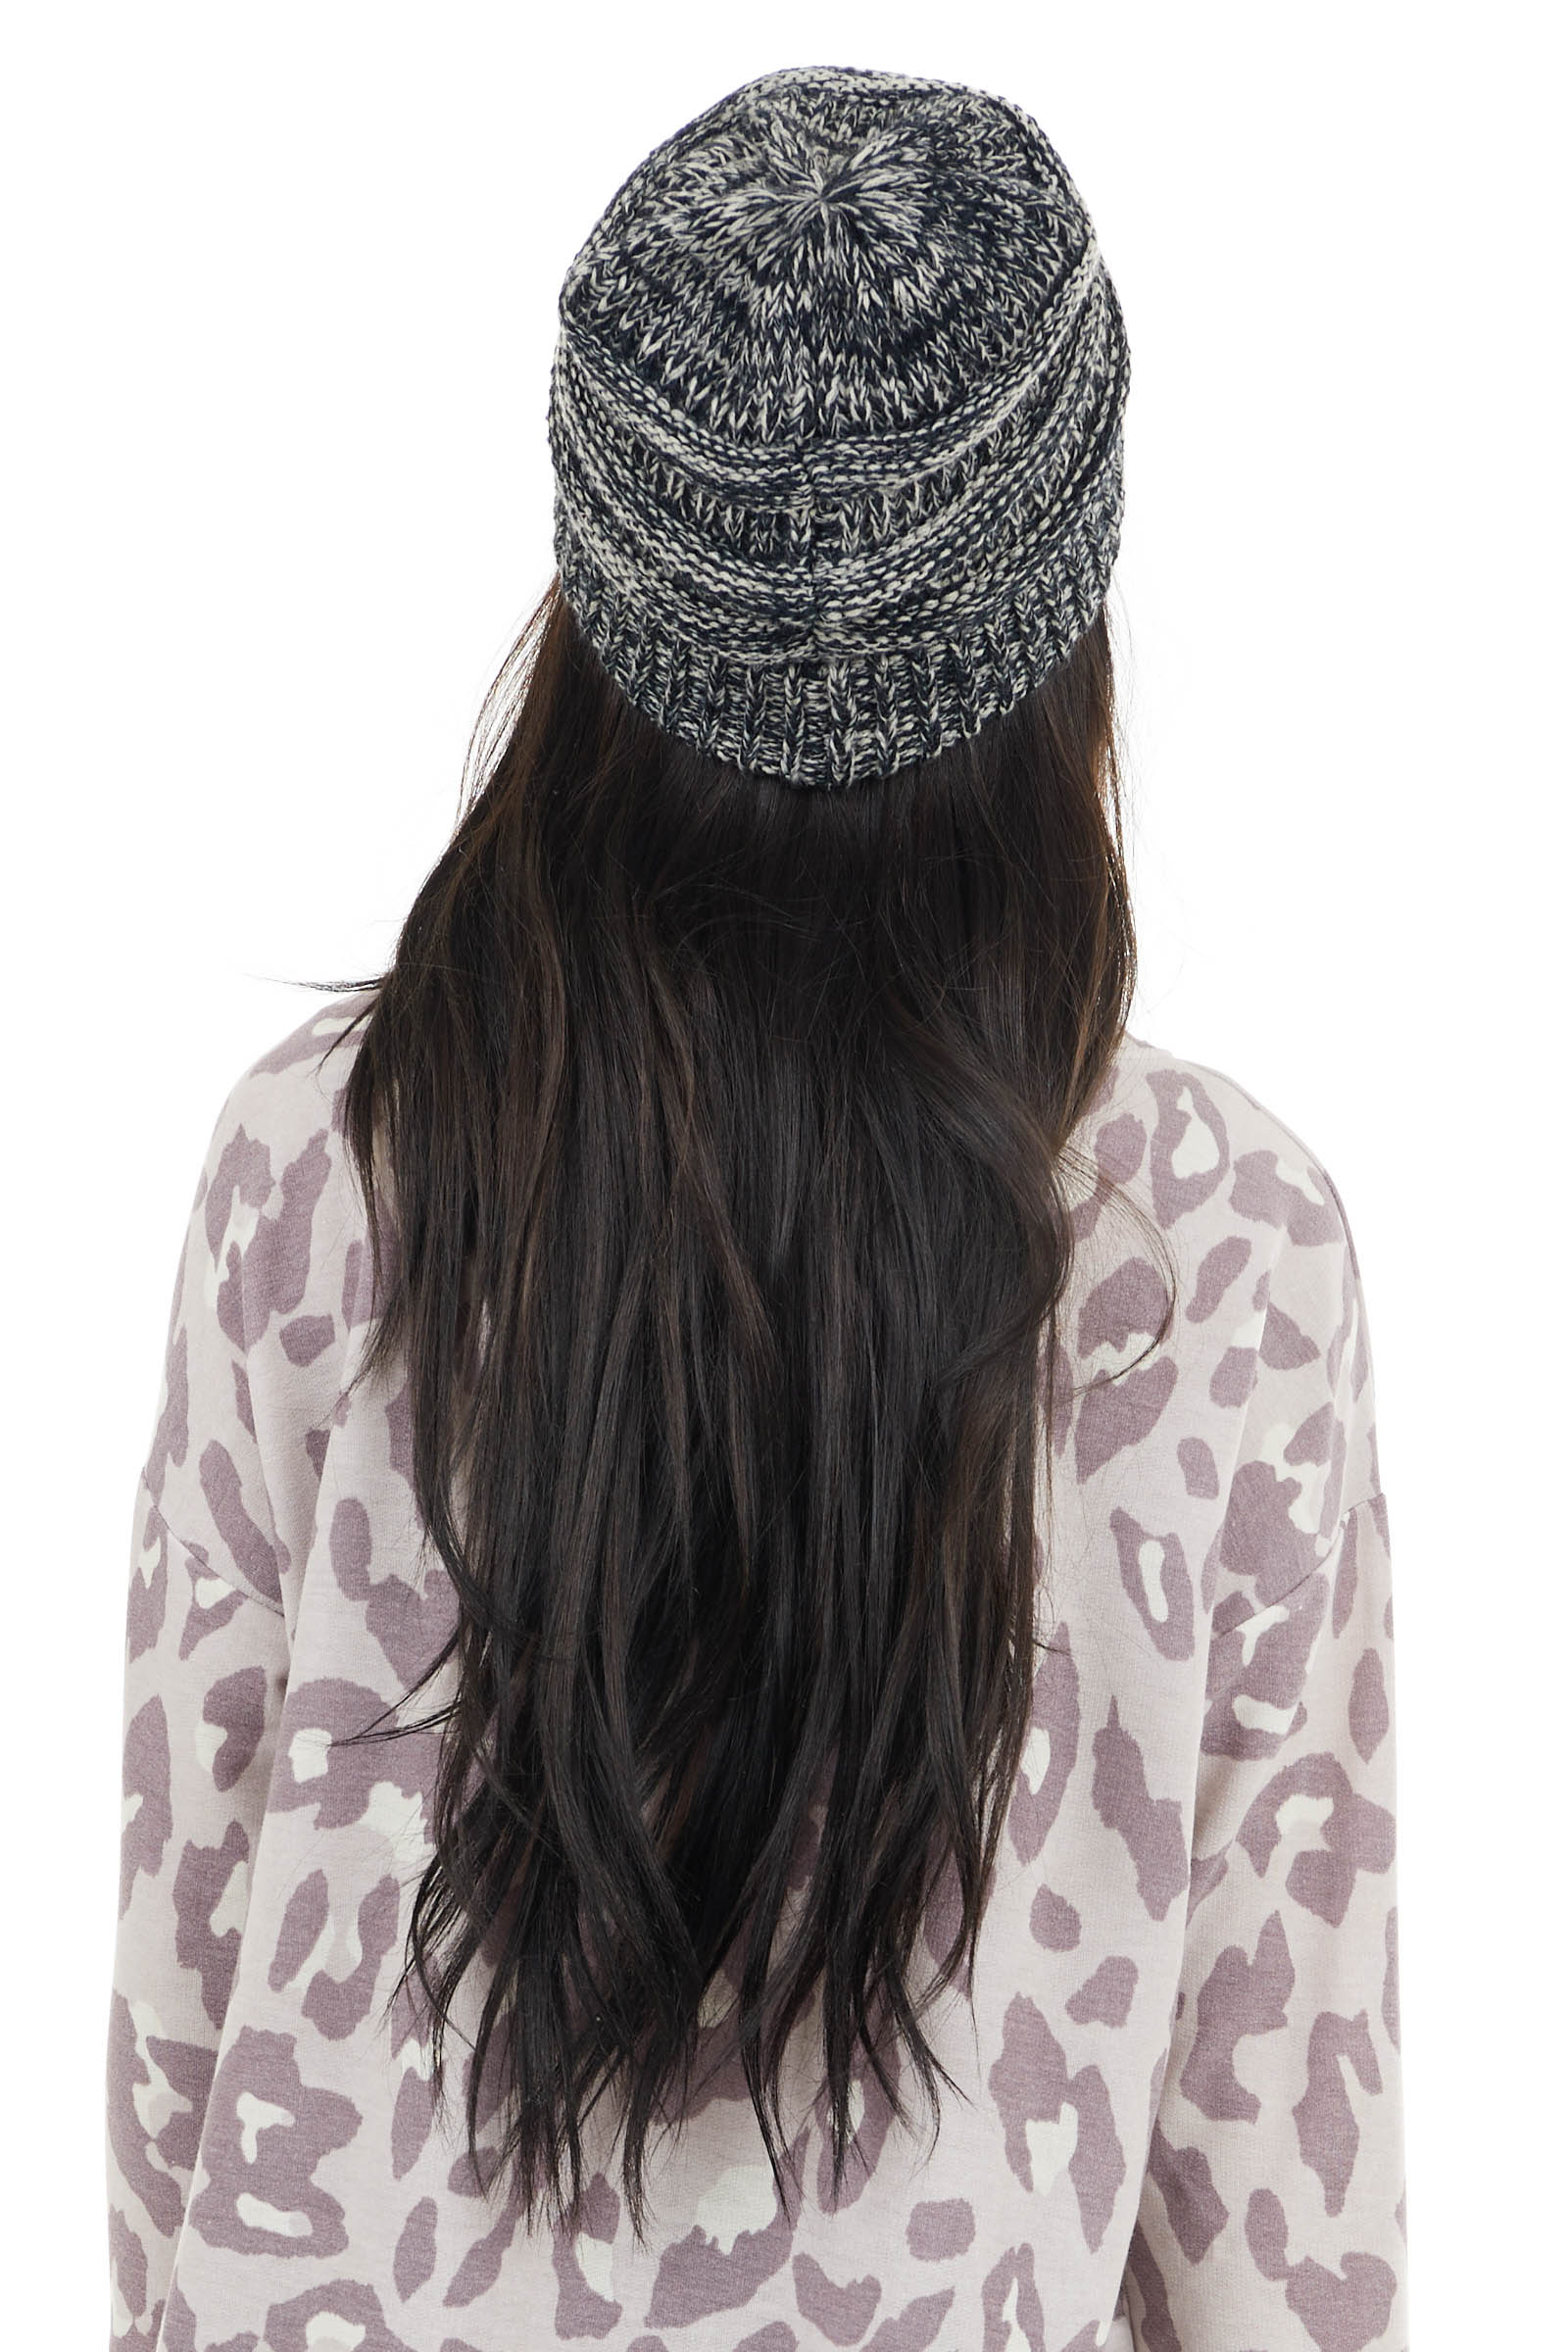 Black and Ivory Chunky Knit Ribbed Beanie